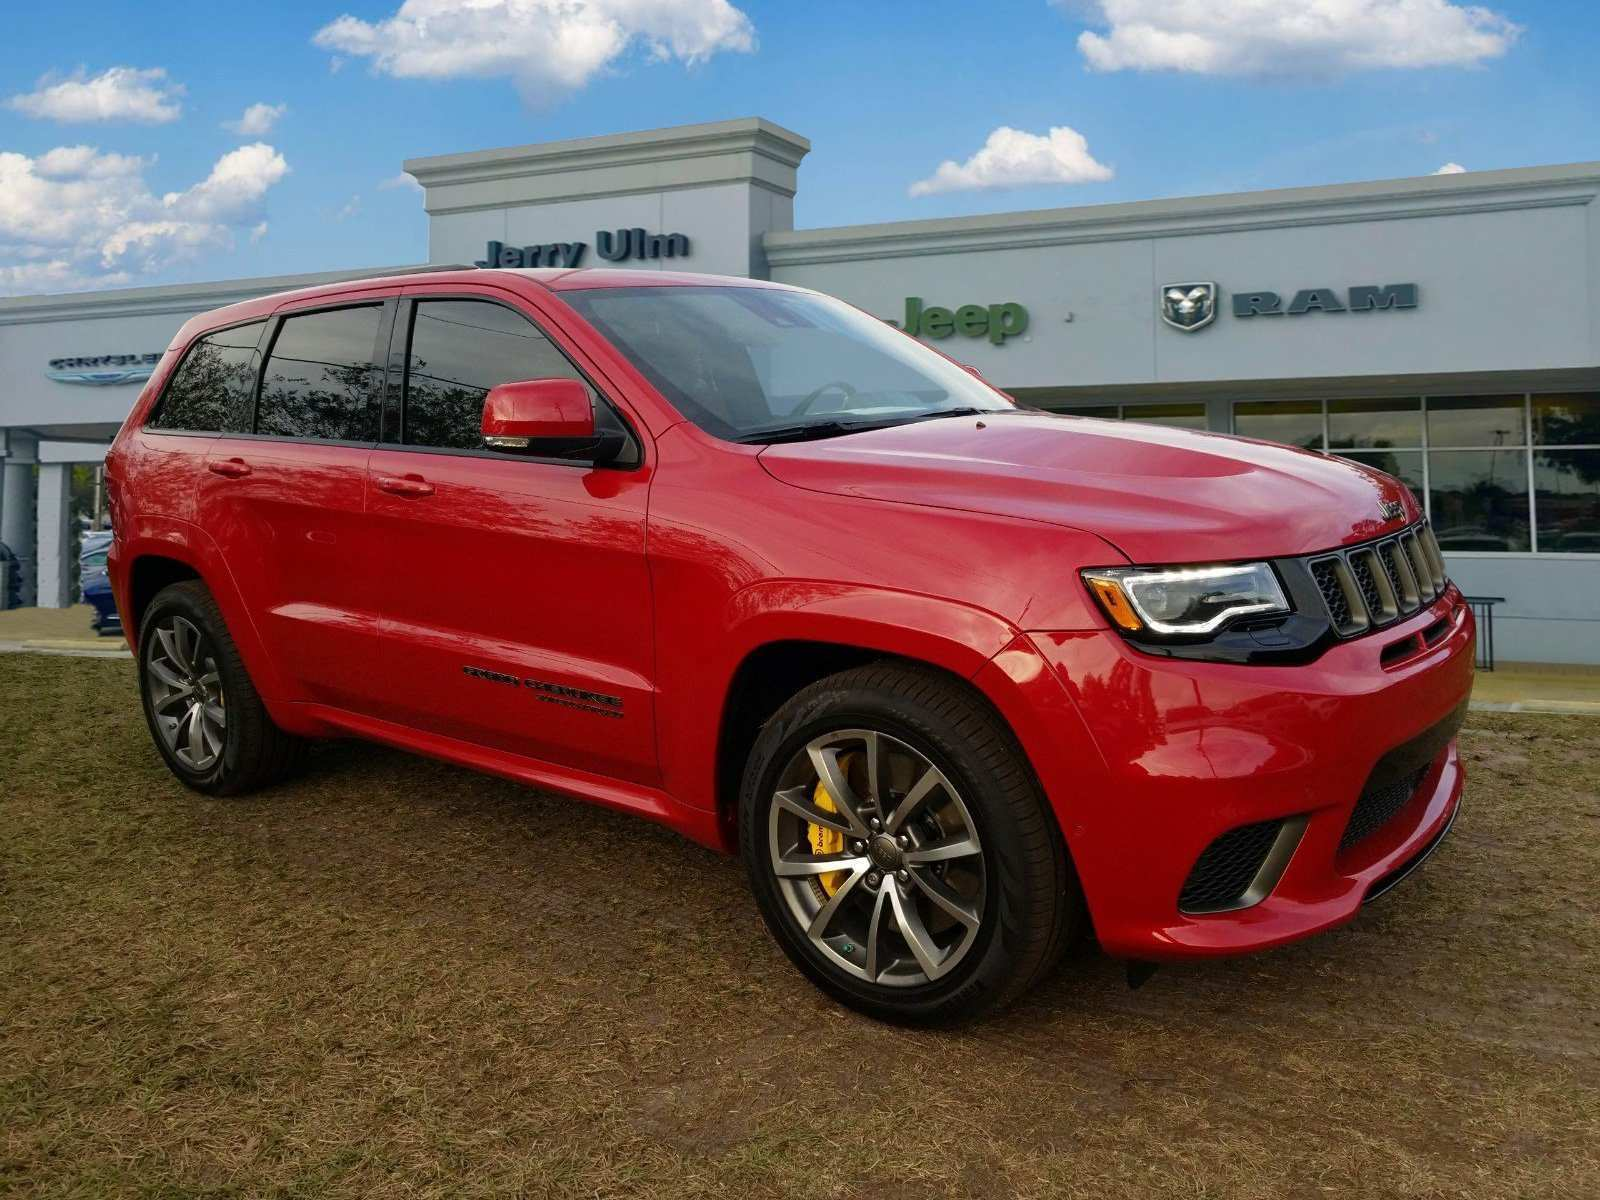 88 The 2019 Jeep Grand Cherokee Trackhawk Picture for 2019 Jeep Grand Cherokee Trackhawk